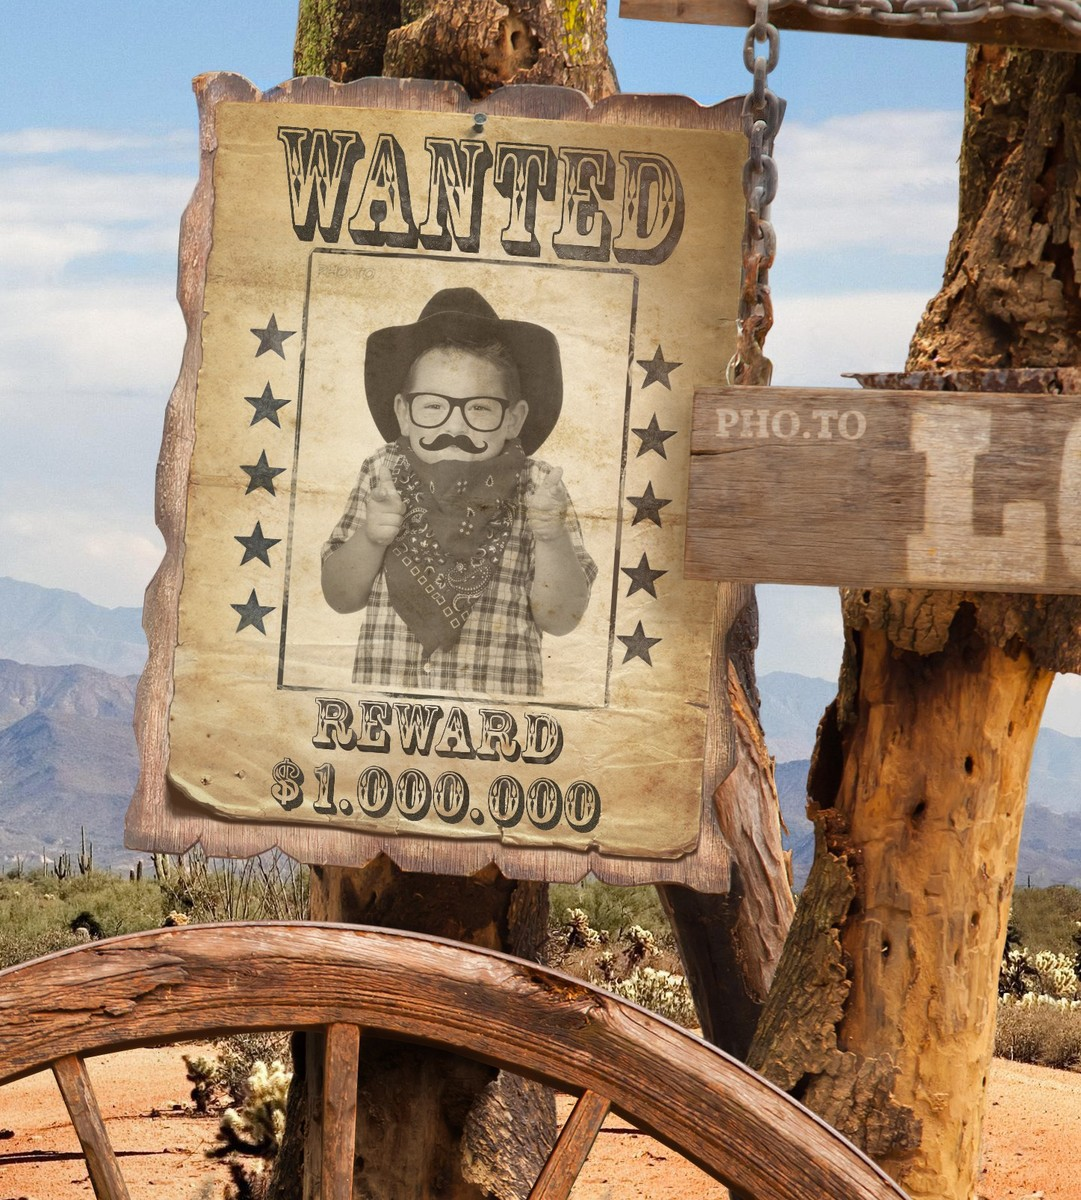 A photo of a small boy was placed into the Wanted poster photo frame